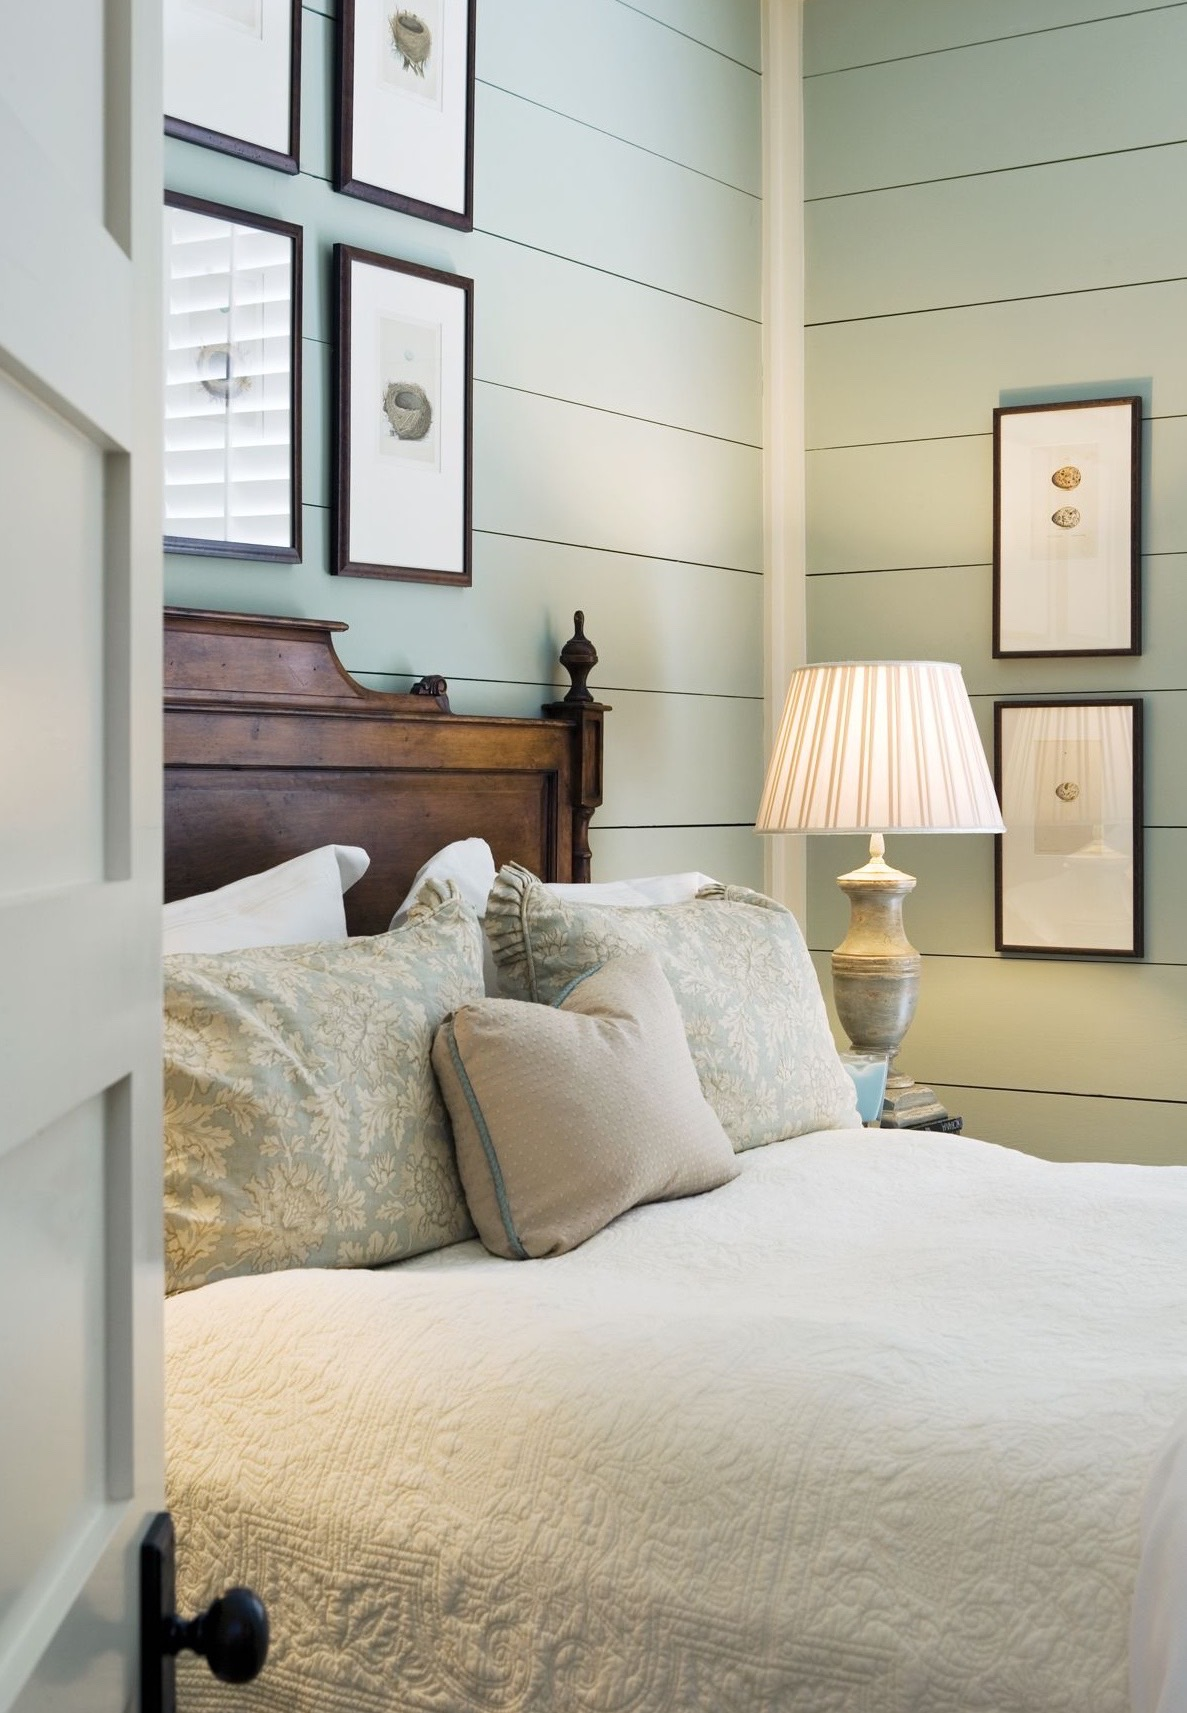 Dorset Bedroom With Shiplap Walls.jpg